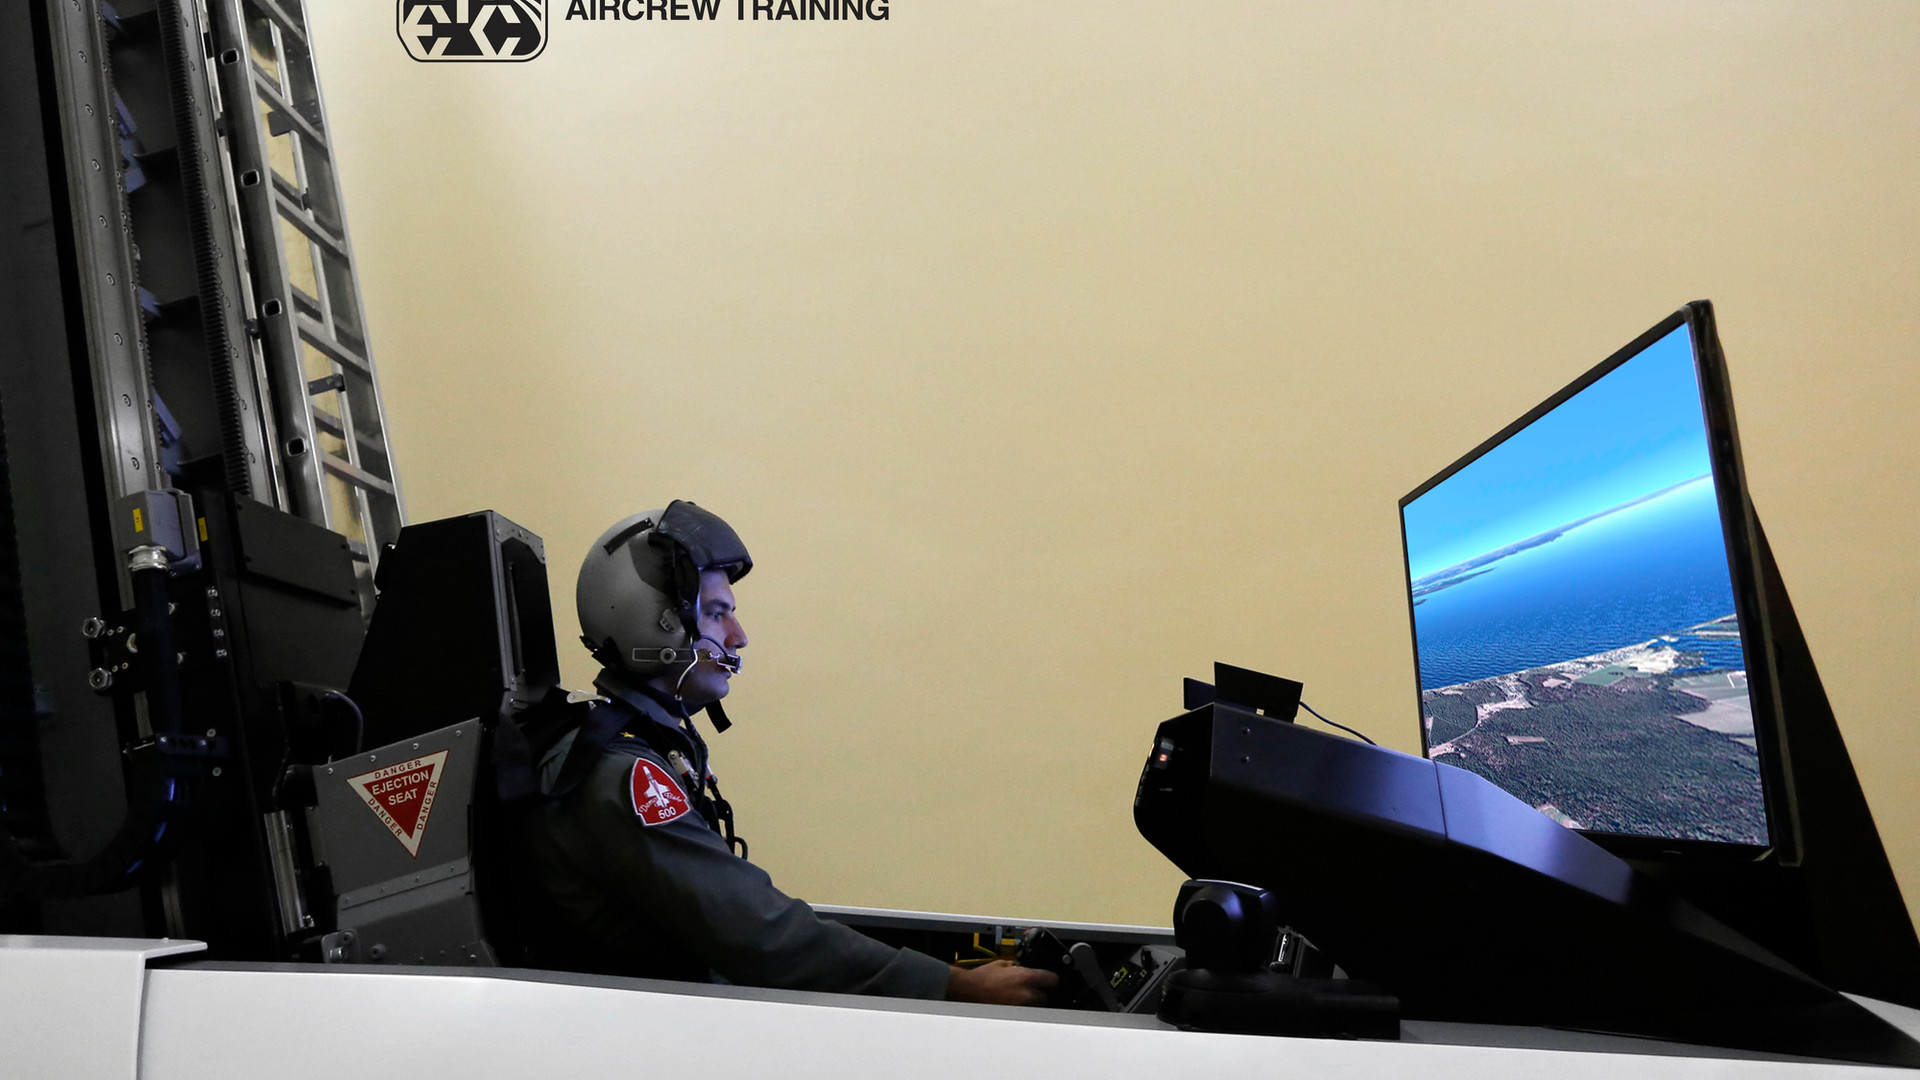 ejection-seat-system-01 NO TEXT.jpg